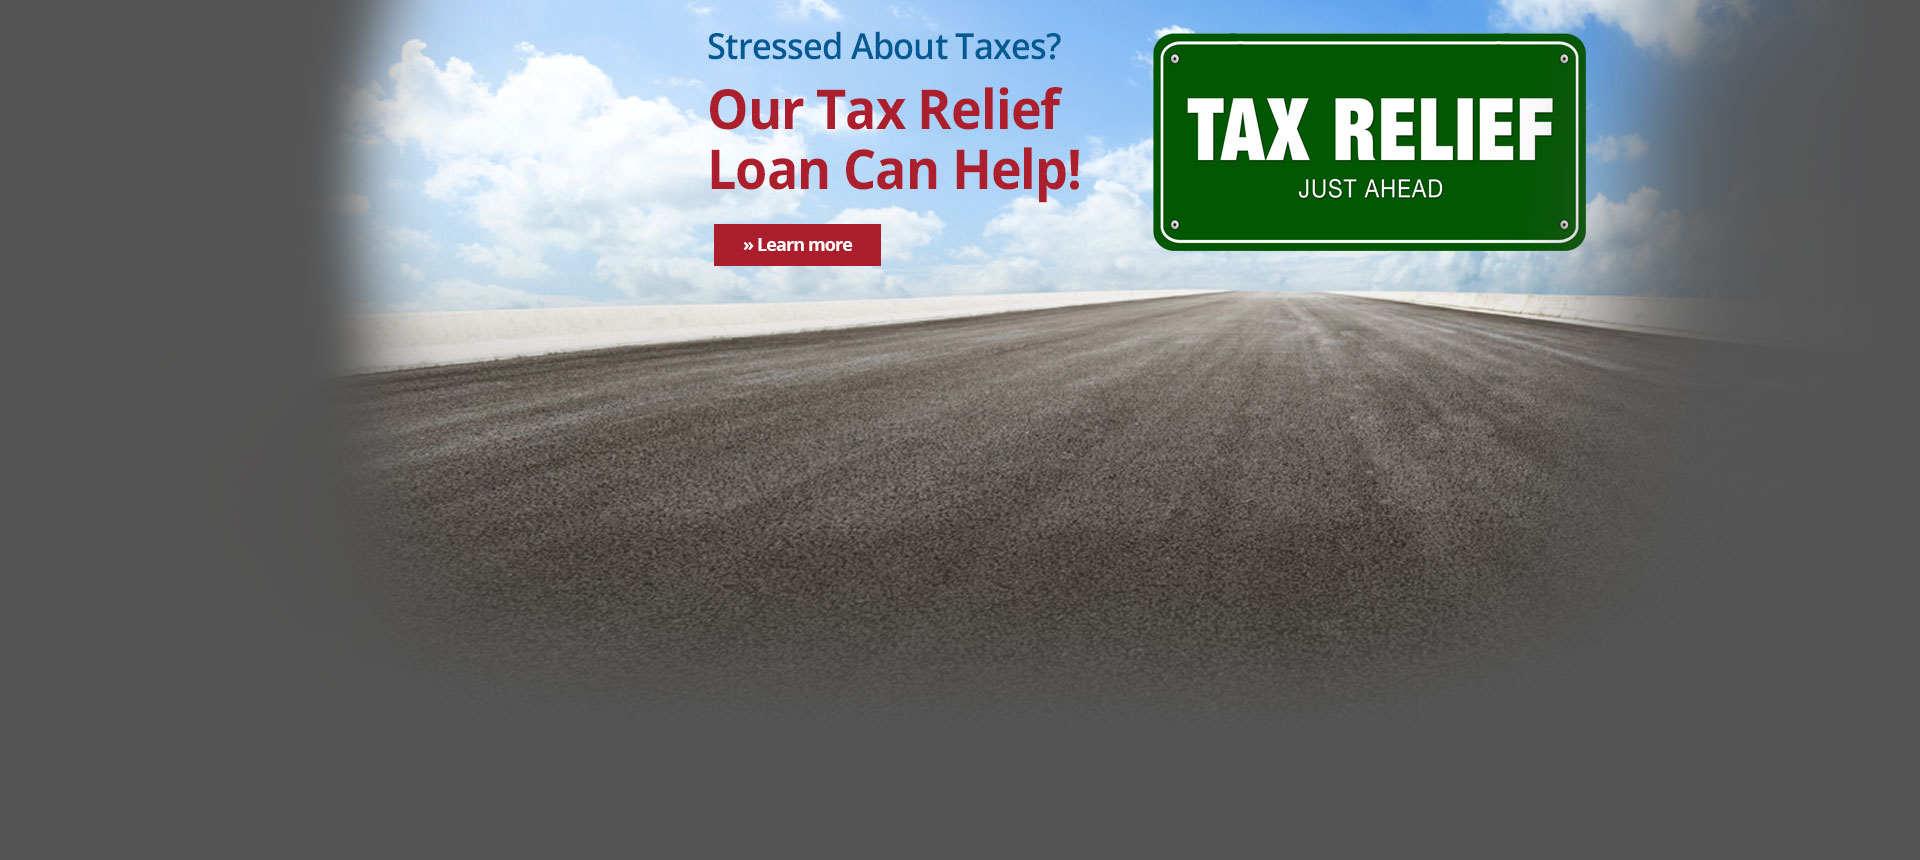 Need Help Paying Your Taxes? Our Tax Relief Loan Can Help!